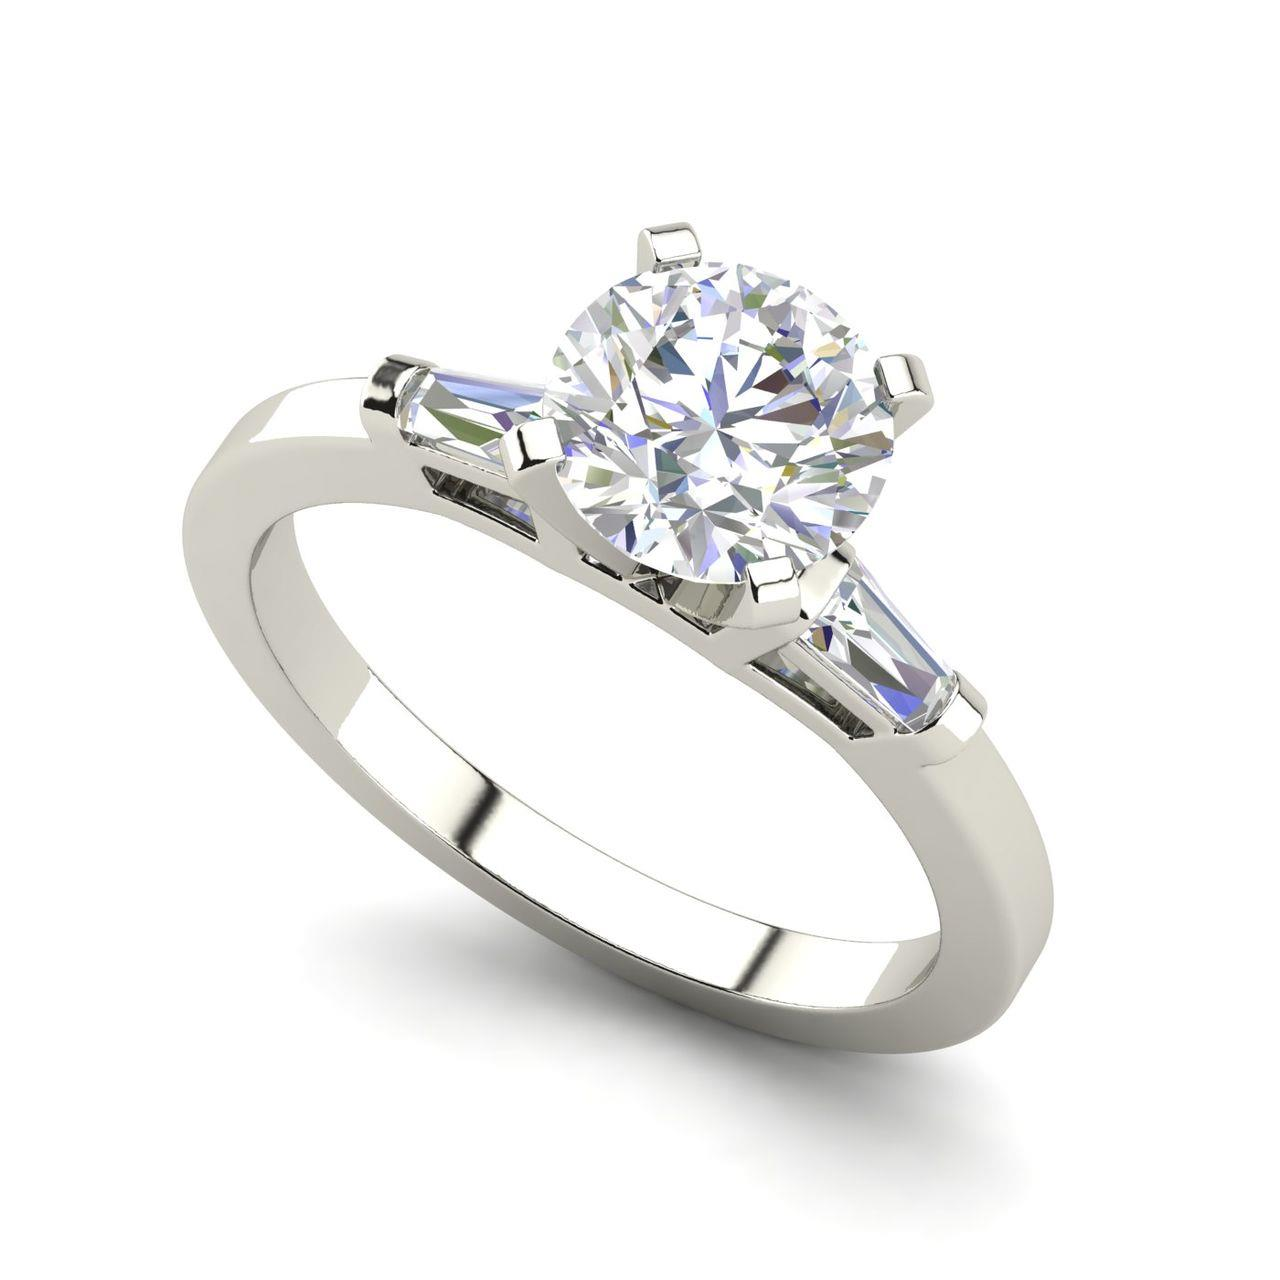 Baguette Accents 0.8 Carat Round Cut Diamond Engagement Ring